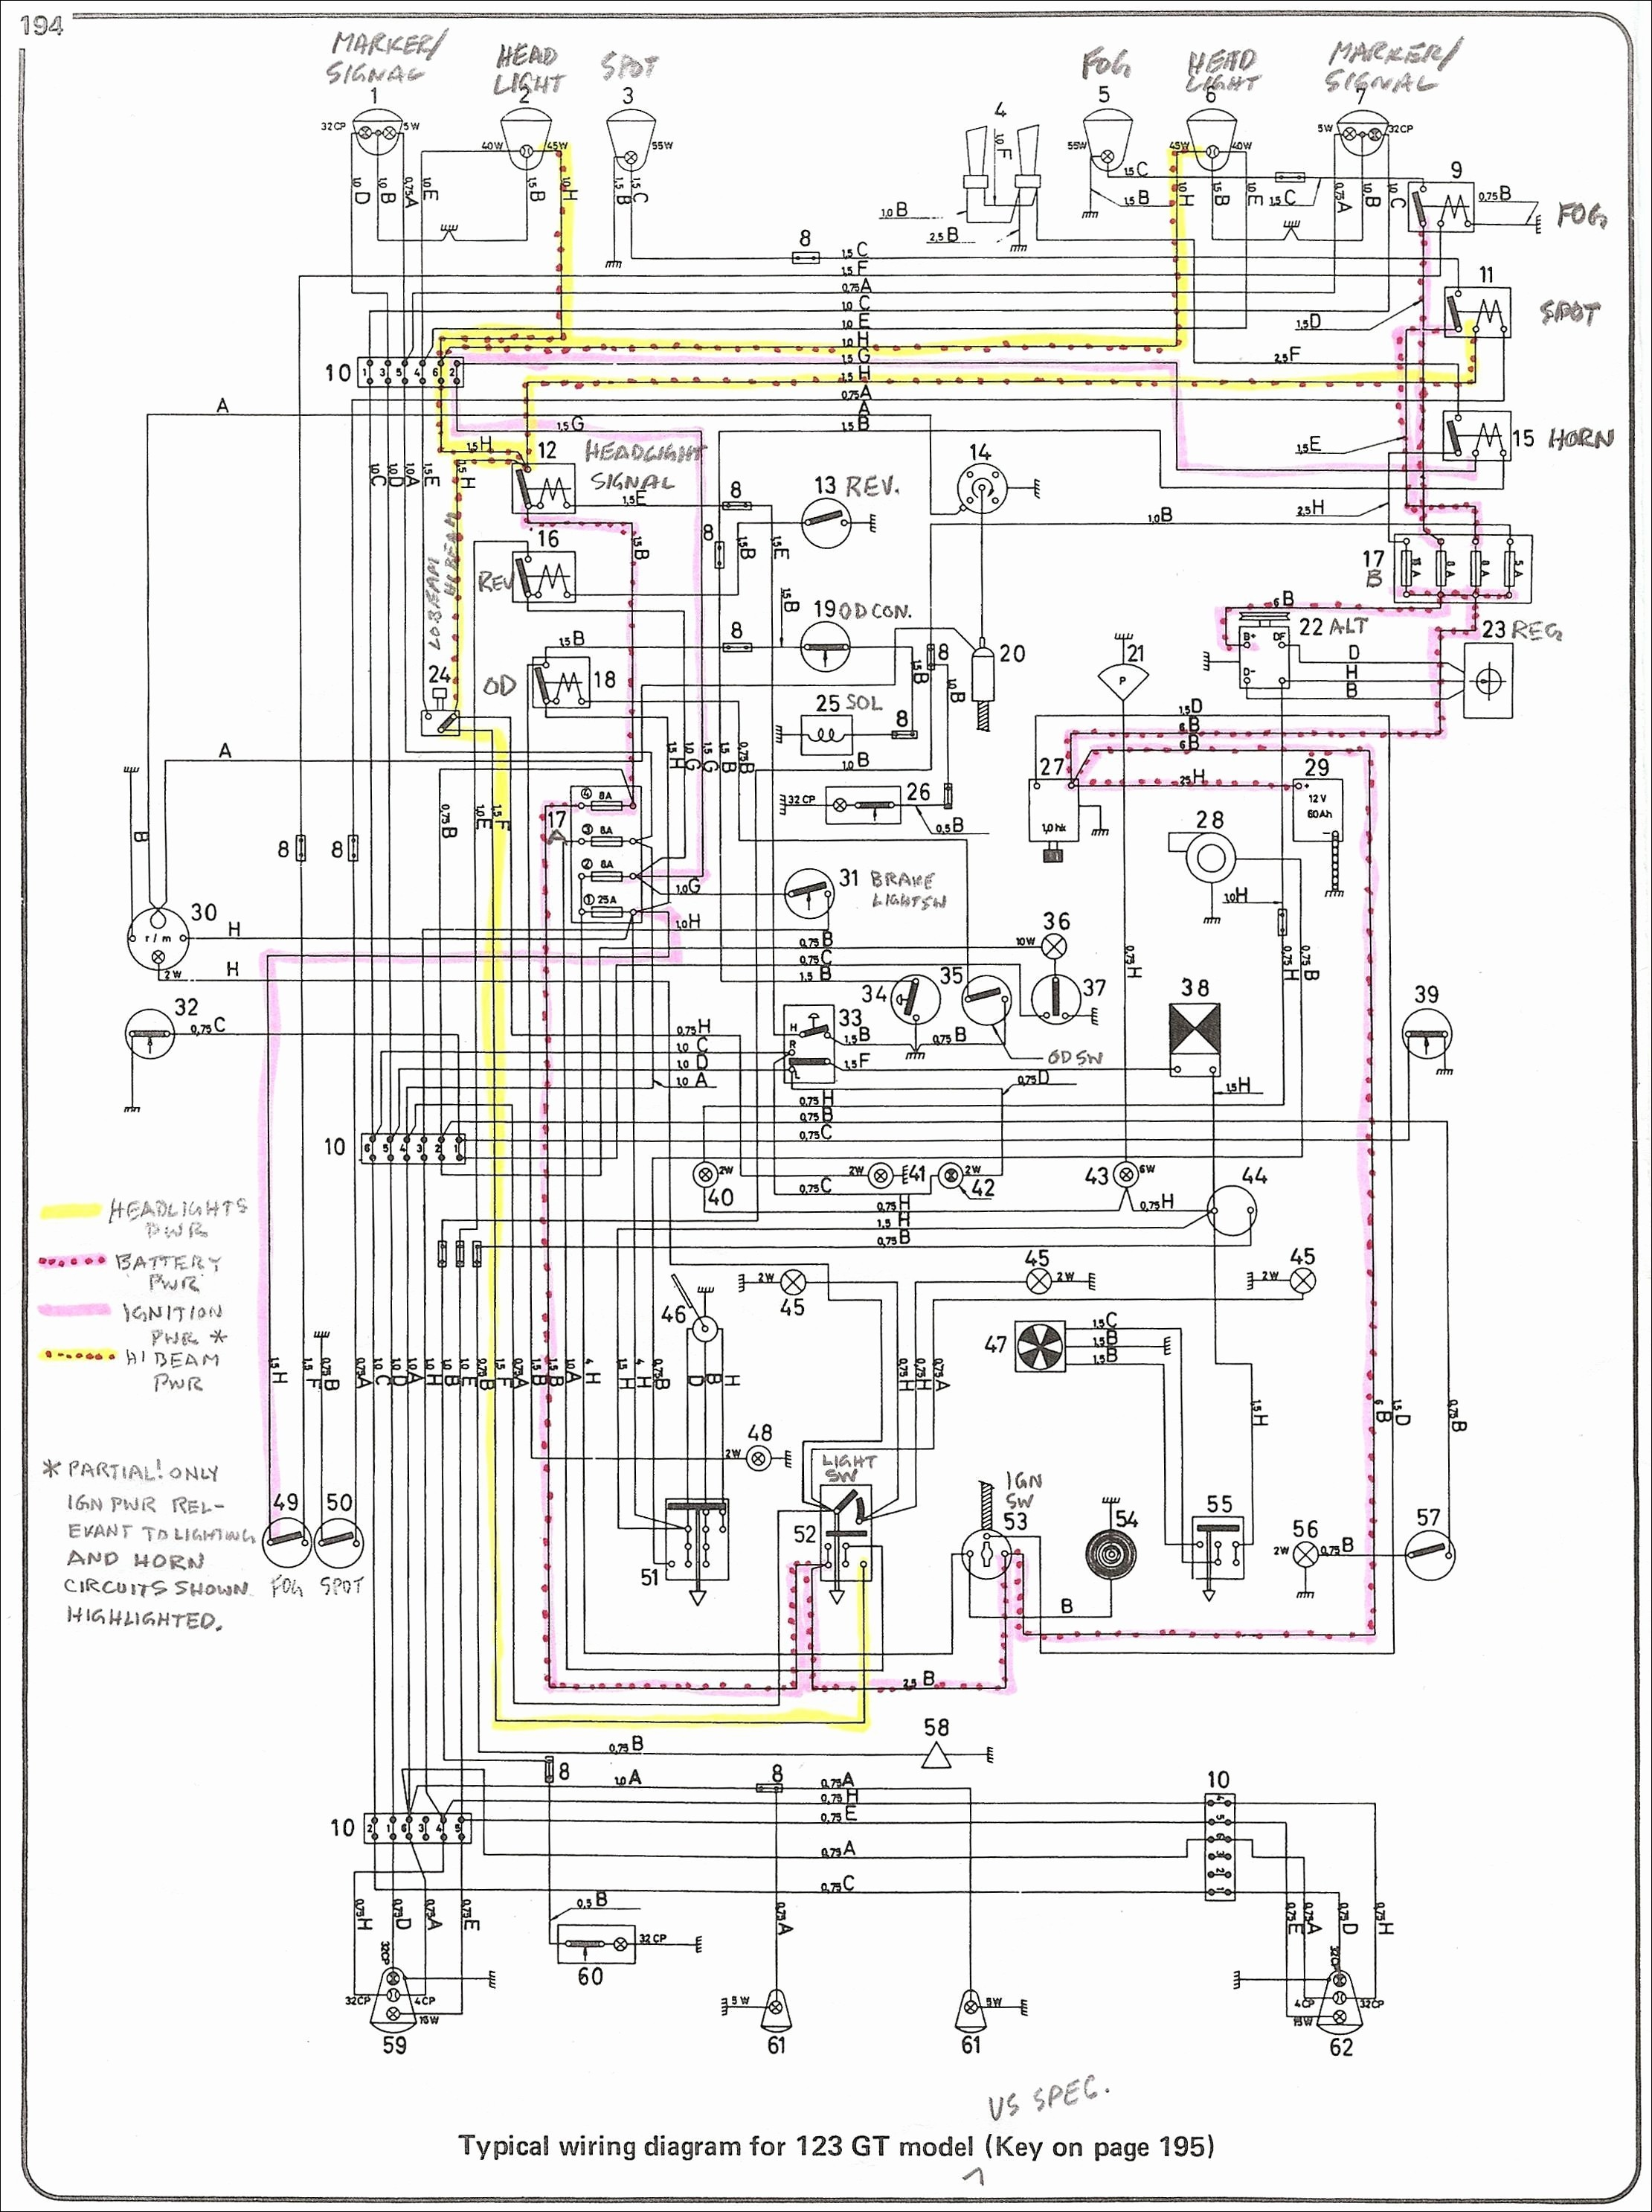 0 10 Volt Dimming Wiring Diagram Inspirational Wiring Diagram Light & Dimmer Switch Circuit